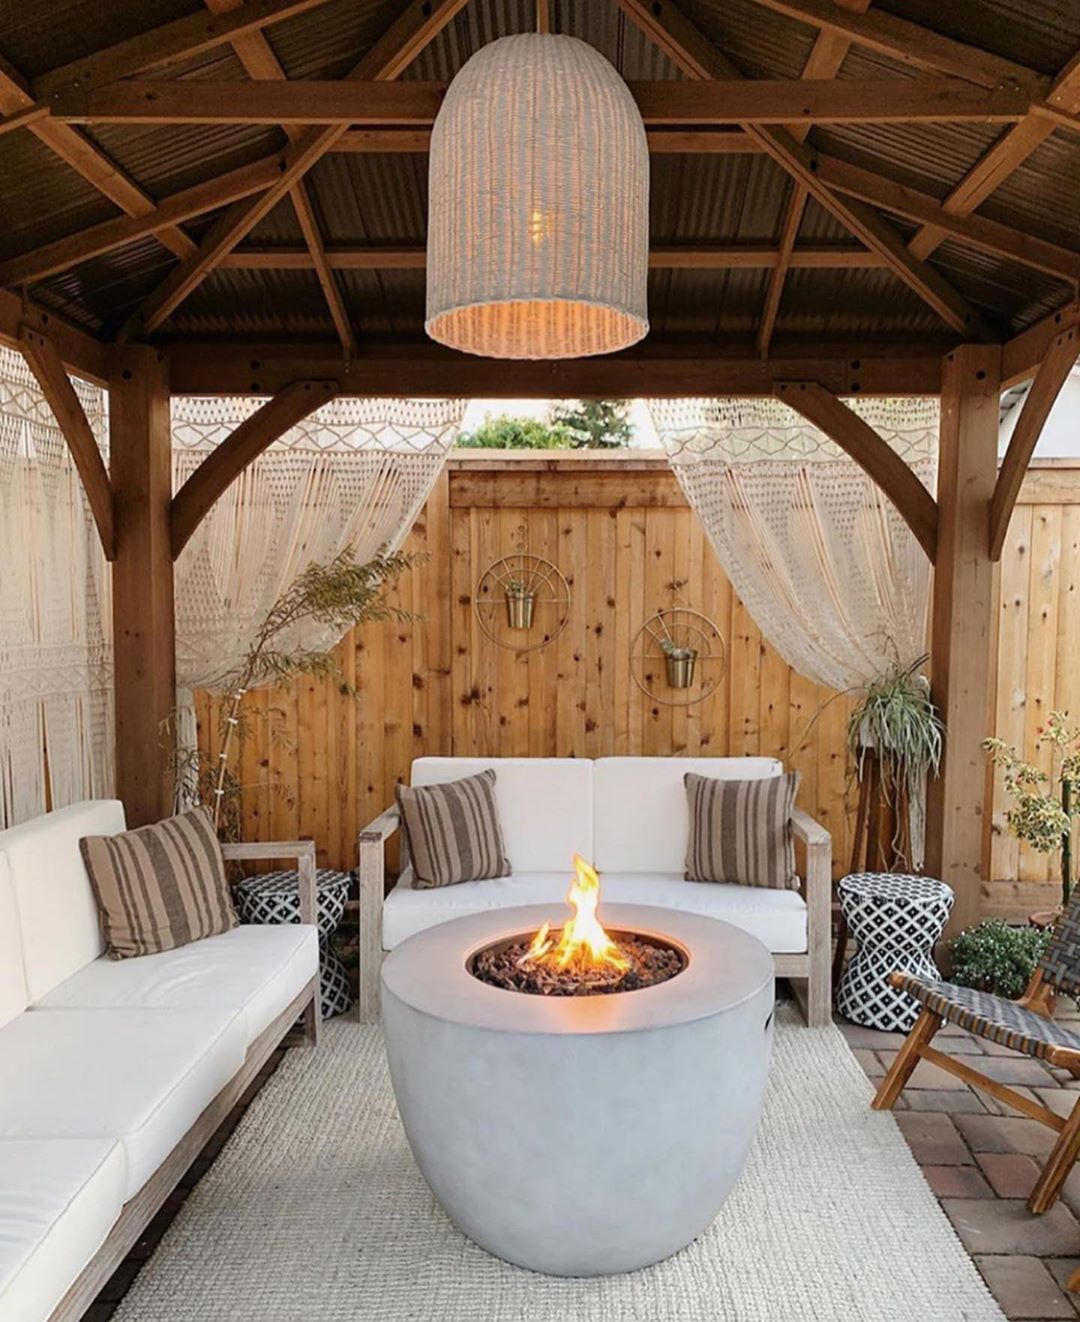 Design Your Own Exterior: @angelarosehome Just Shared All These AMAZING Outdoor